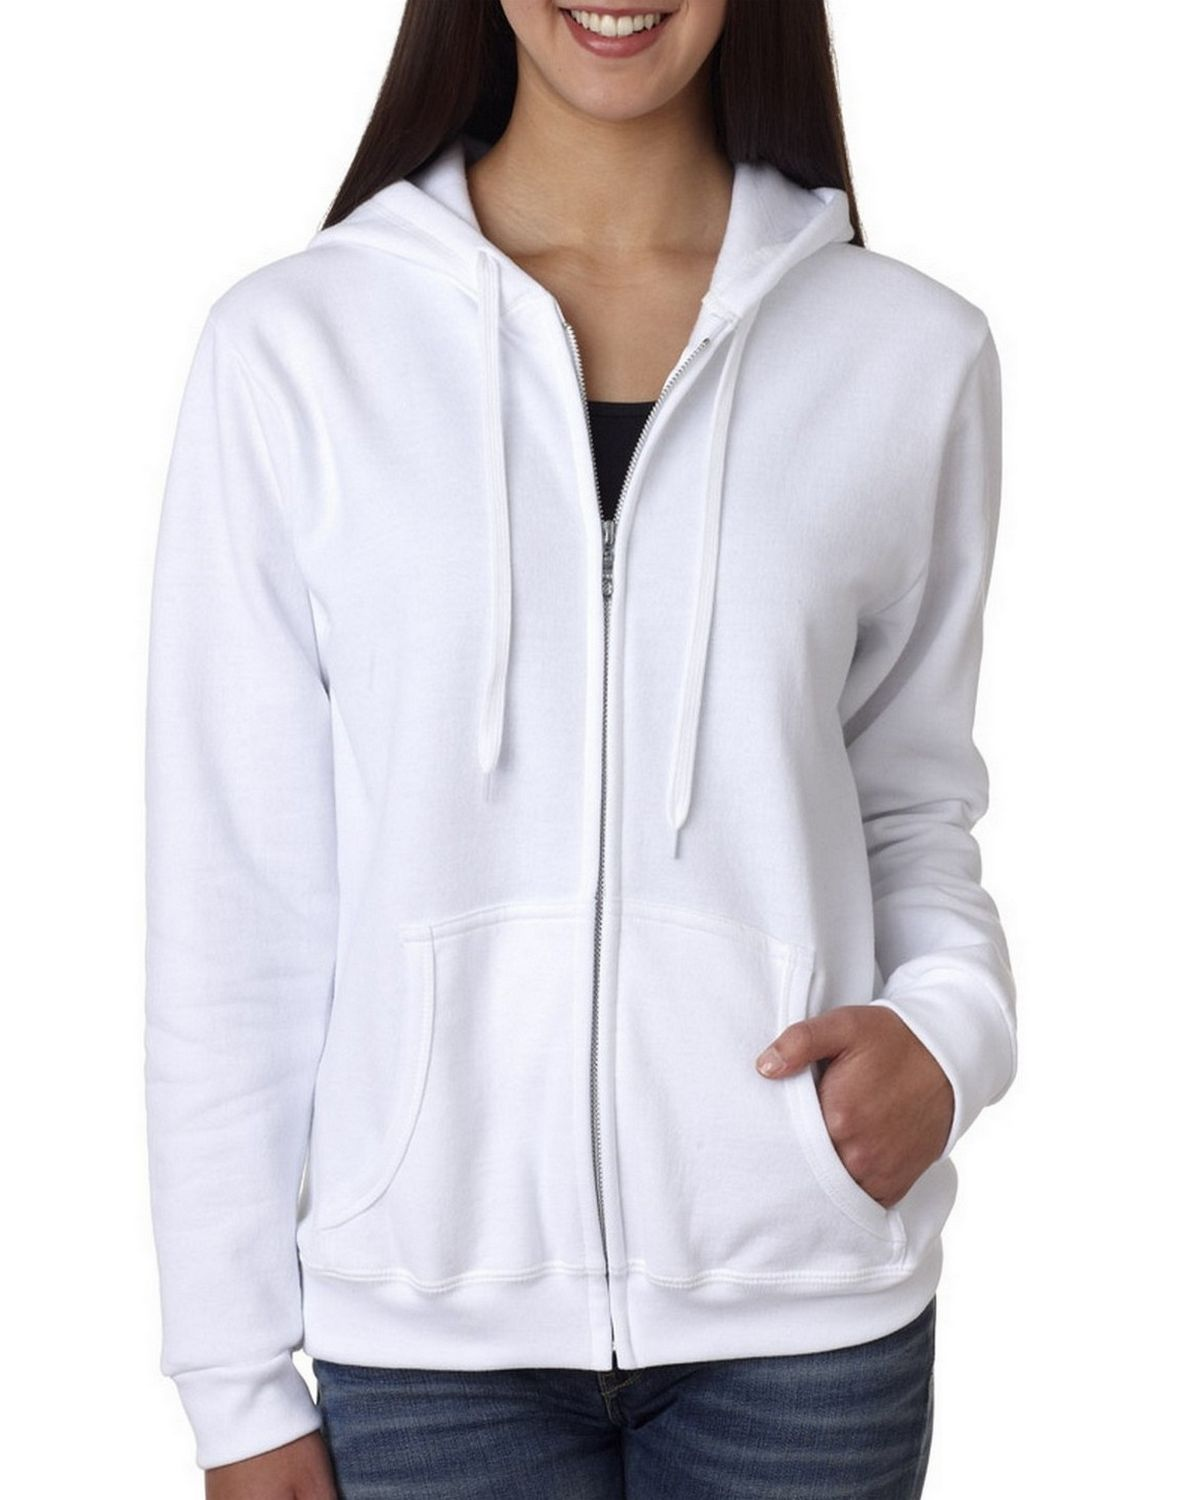 Gildan 18600FL Ladies Hooded Sweatshirt - ApparelnBags.com